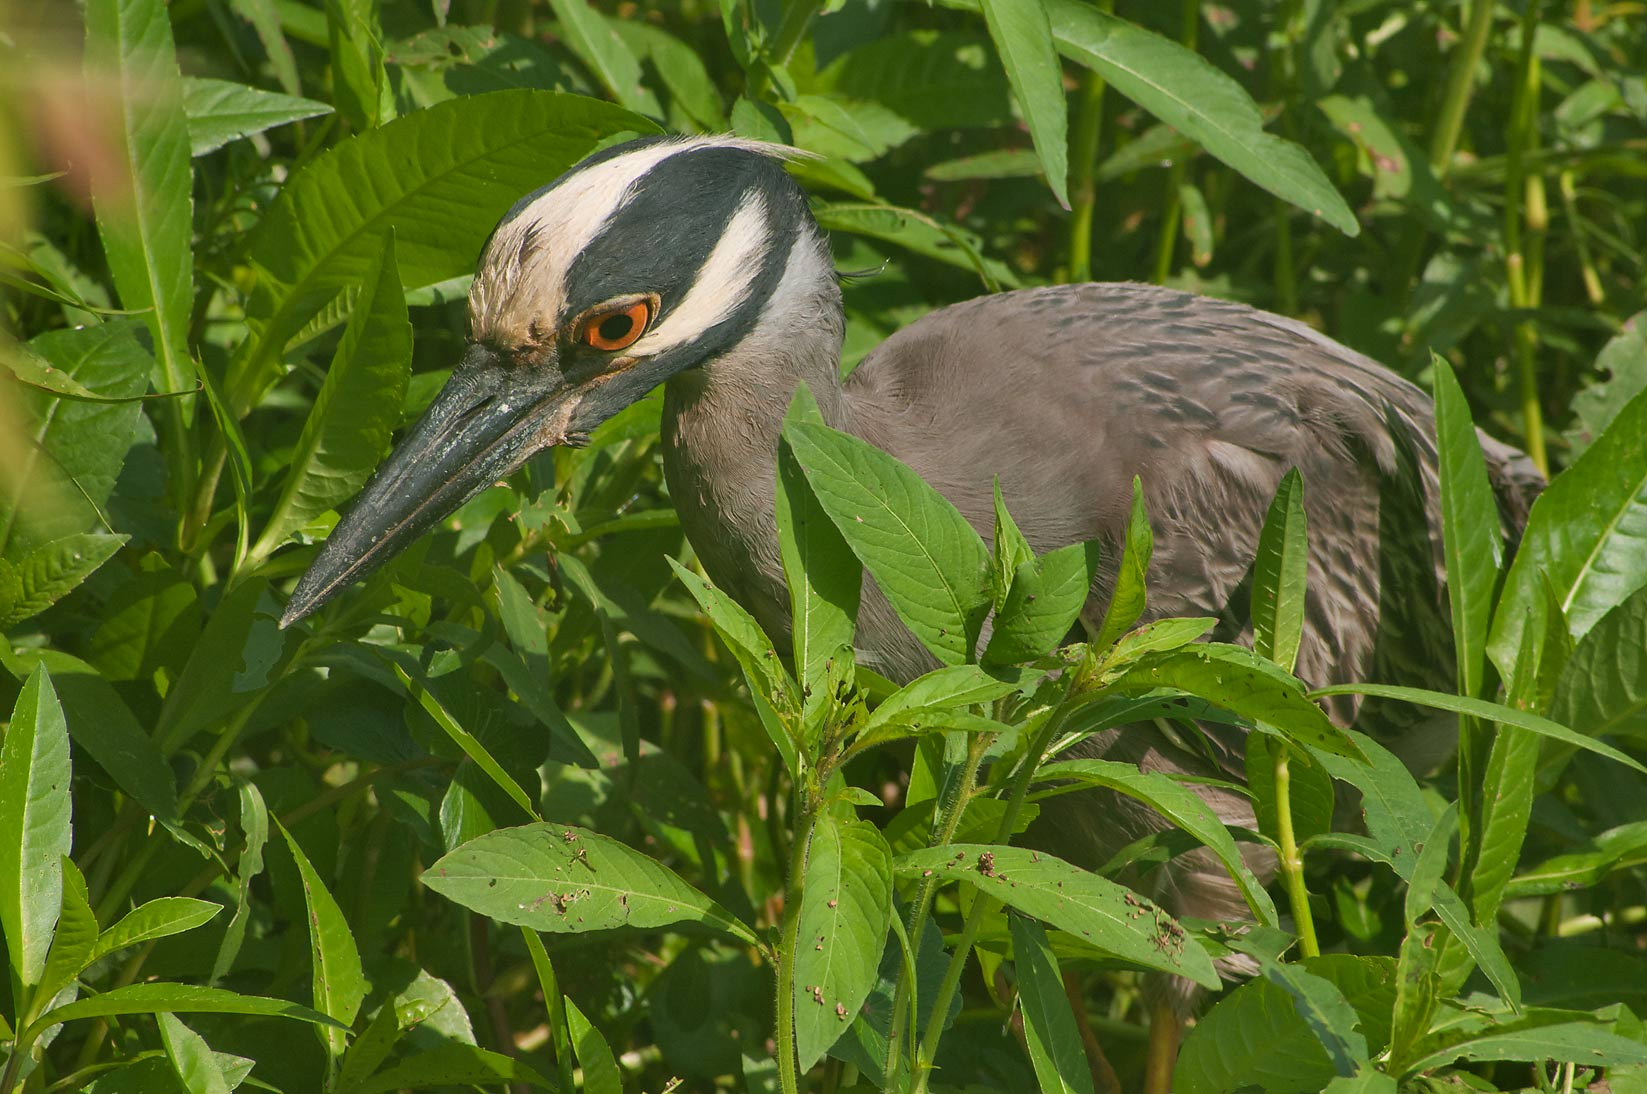 Hunting yellow-crowned night-heron bird in...Bend State Park. Needville, Texas